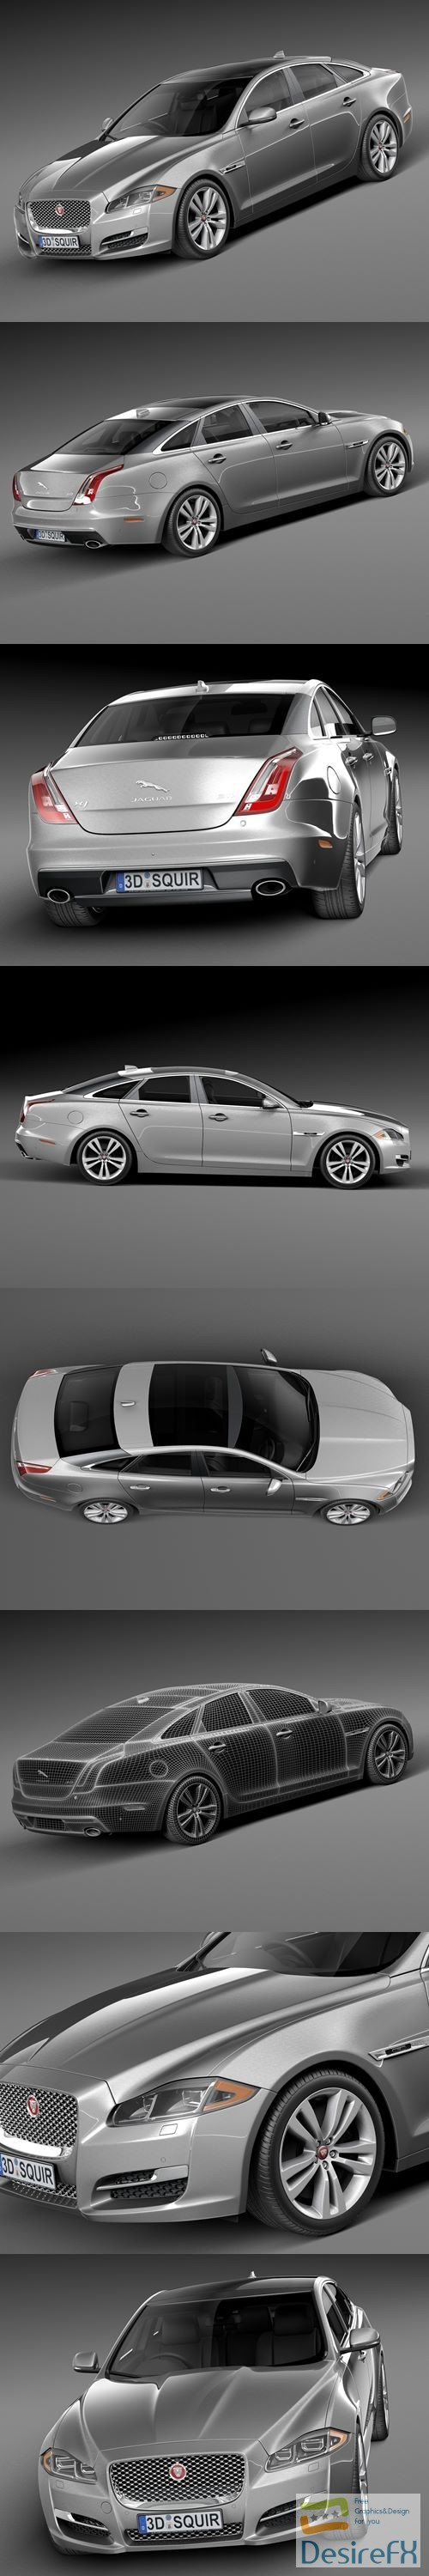 3d-models - Jaguar XJ 2016 3D Model